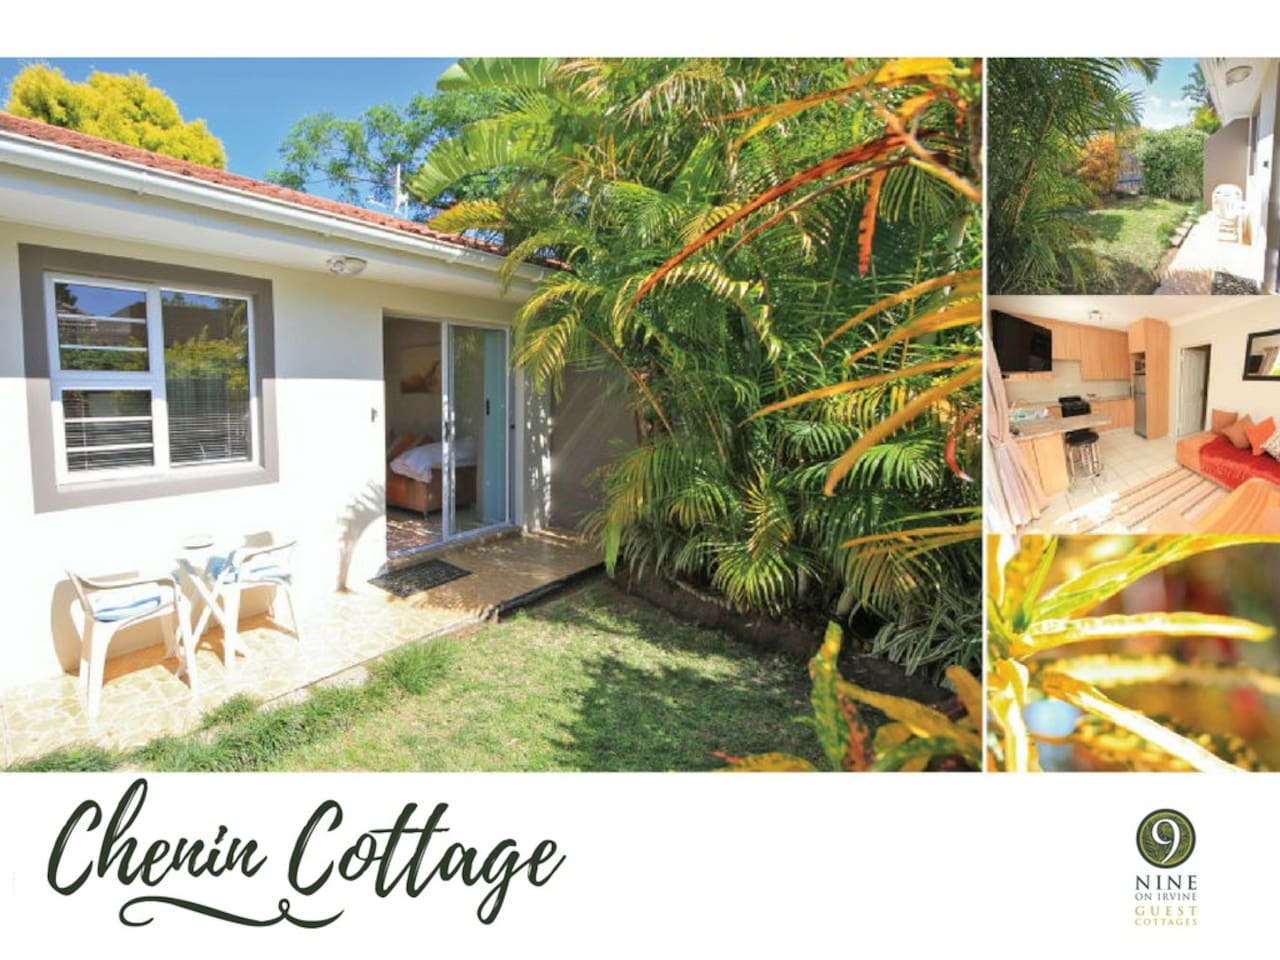 nine on irvine guest cottages chenin cottage apartments for